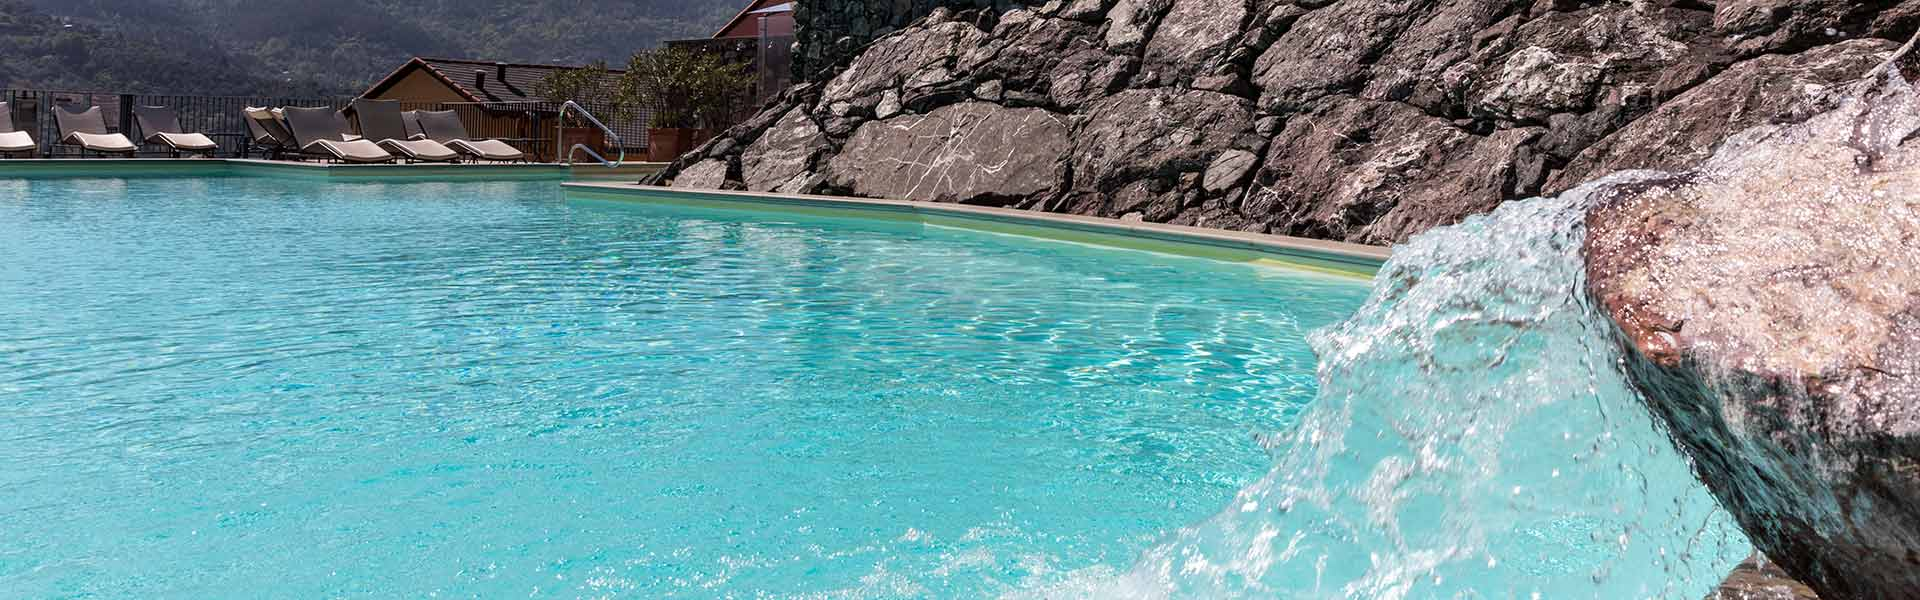 The swimming pool and whirlpool of Park Hotel Argento Resort SPA Levanto